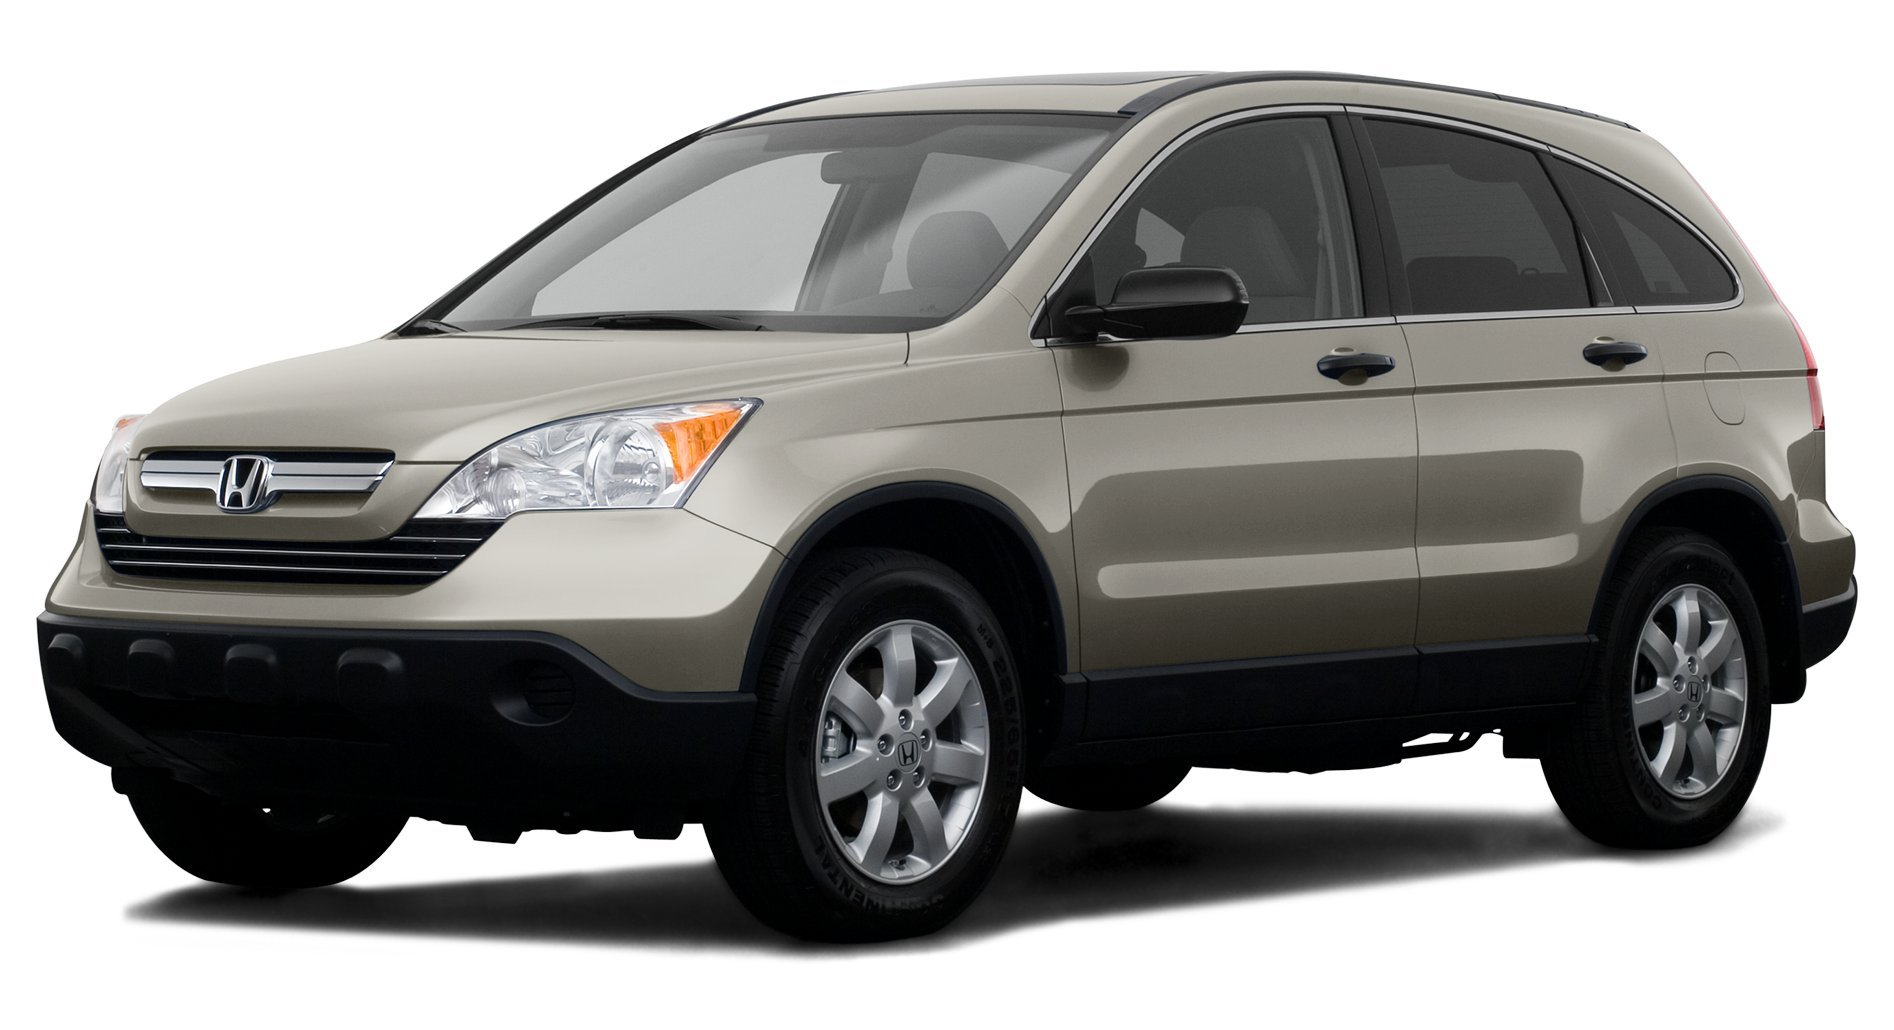 71AbPLLluvL amazon com 2008 honda cr v reviews, images, and specs vehicles 2014 Honda CR-V at mifinder.co